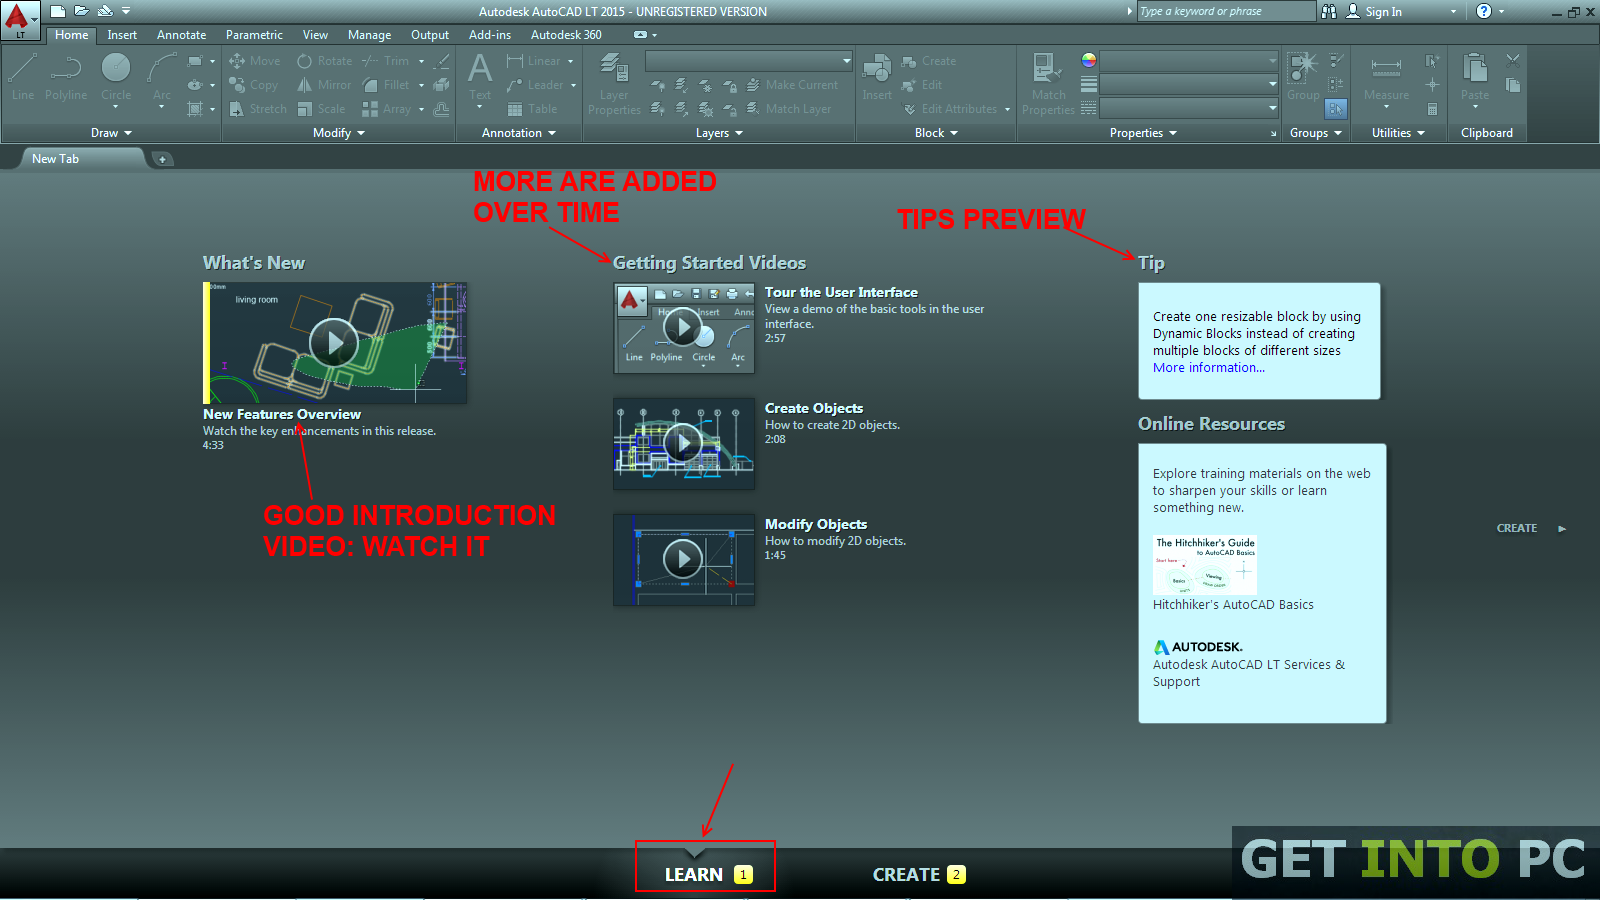 AutoCAD LT 2015 setup Free Download